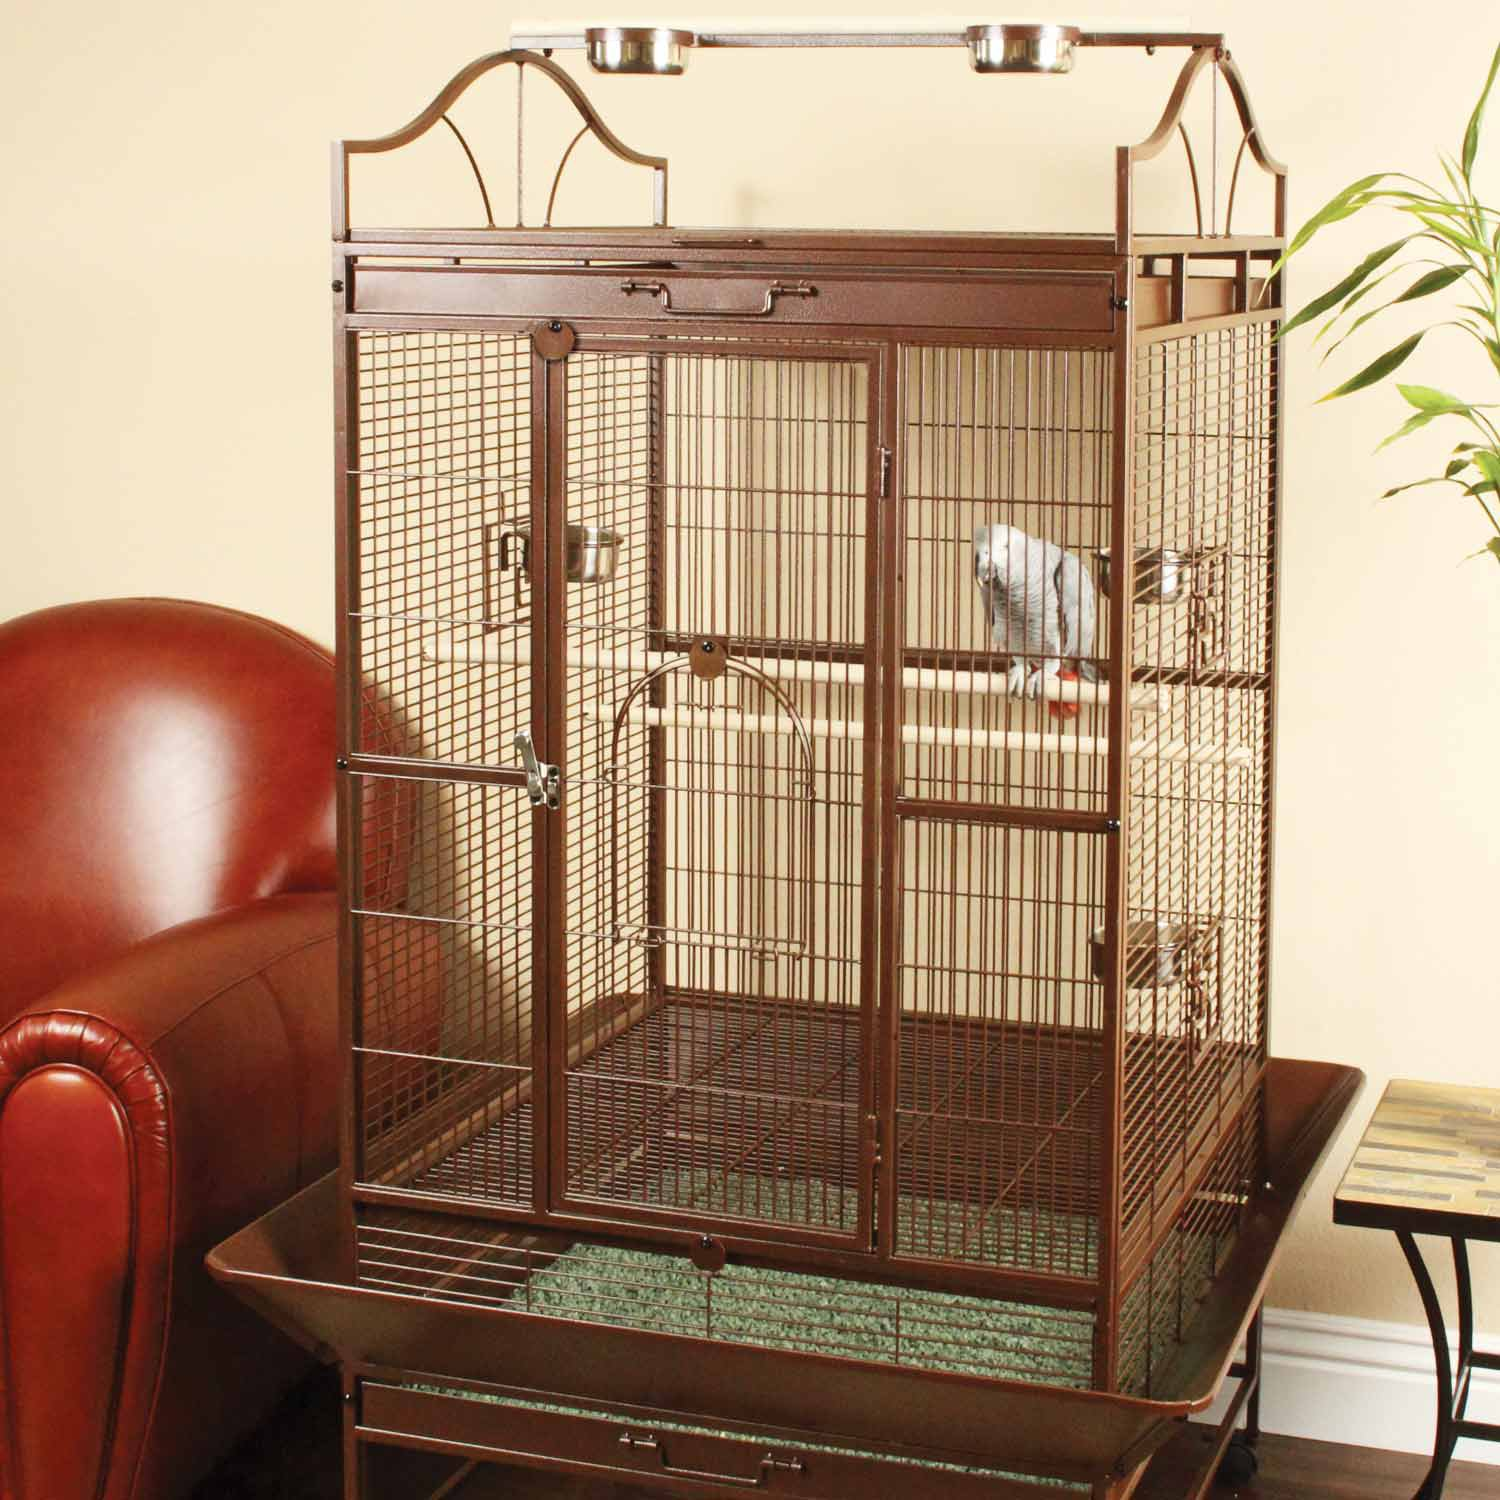 Bird Cages 4 Less offers one of the largest online selections of hard to find bird.